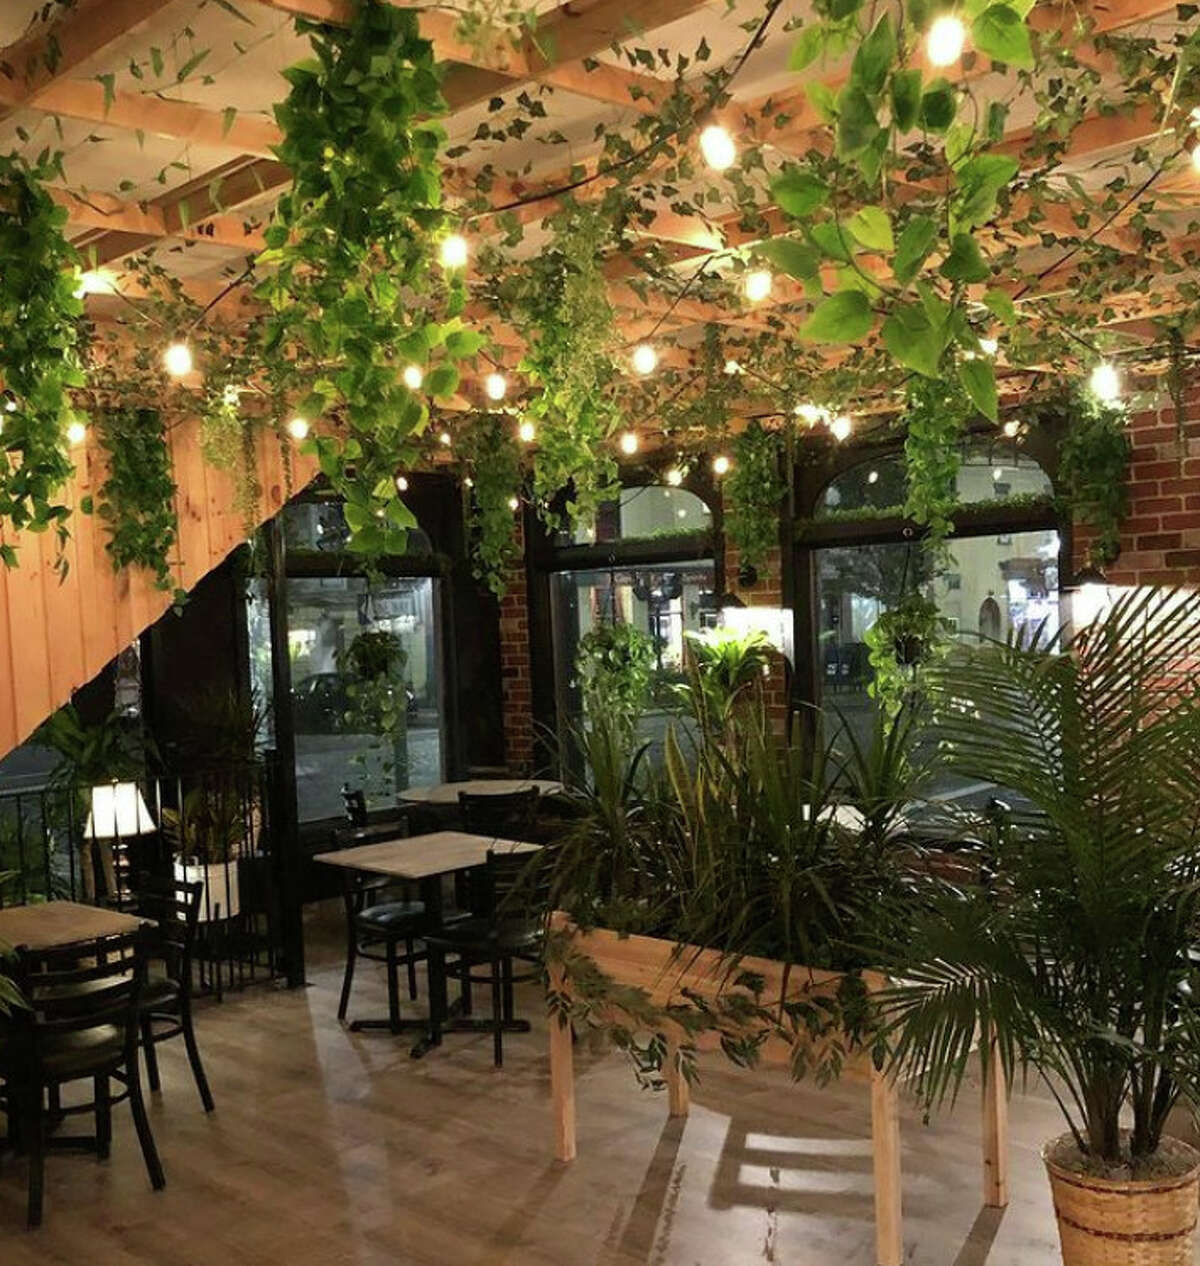 The new bar vegan, a rebranding of the former LAX Restaurant & Bar space at the corner of Lark and State streets in Albany.